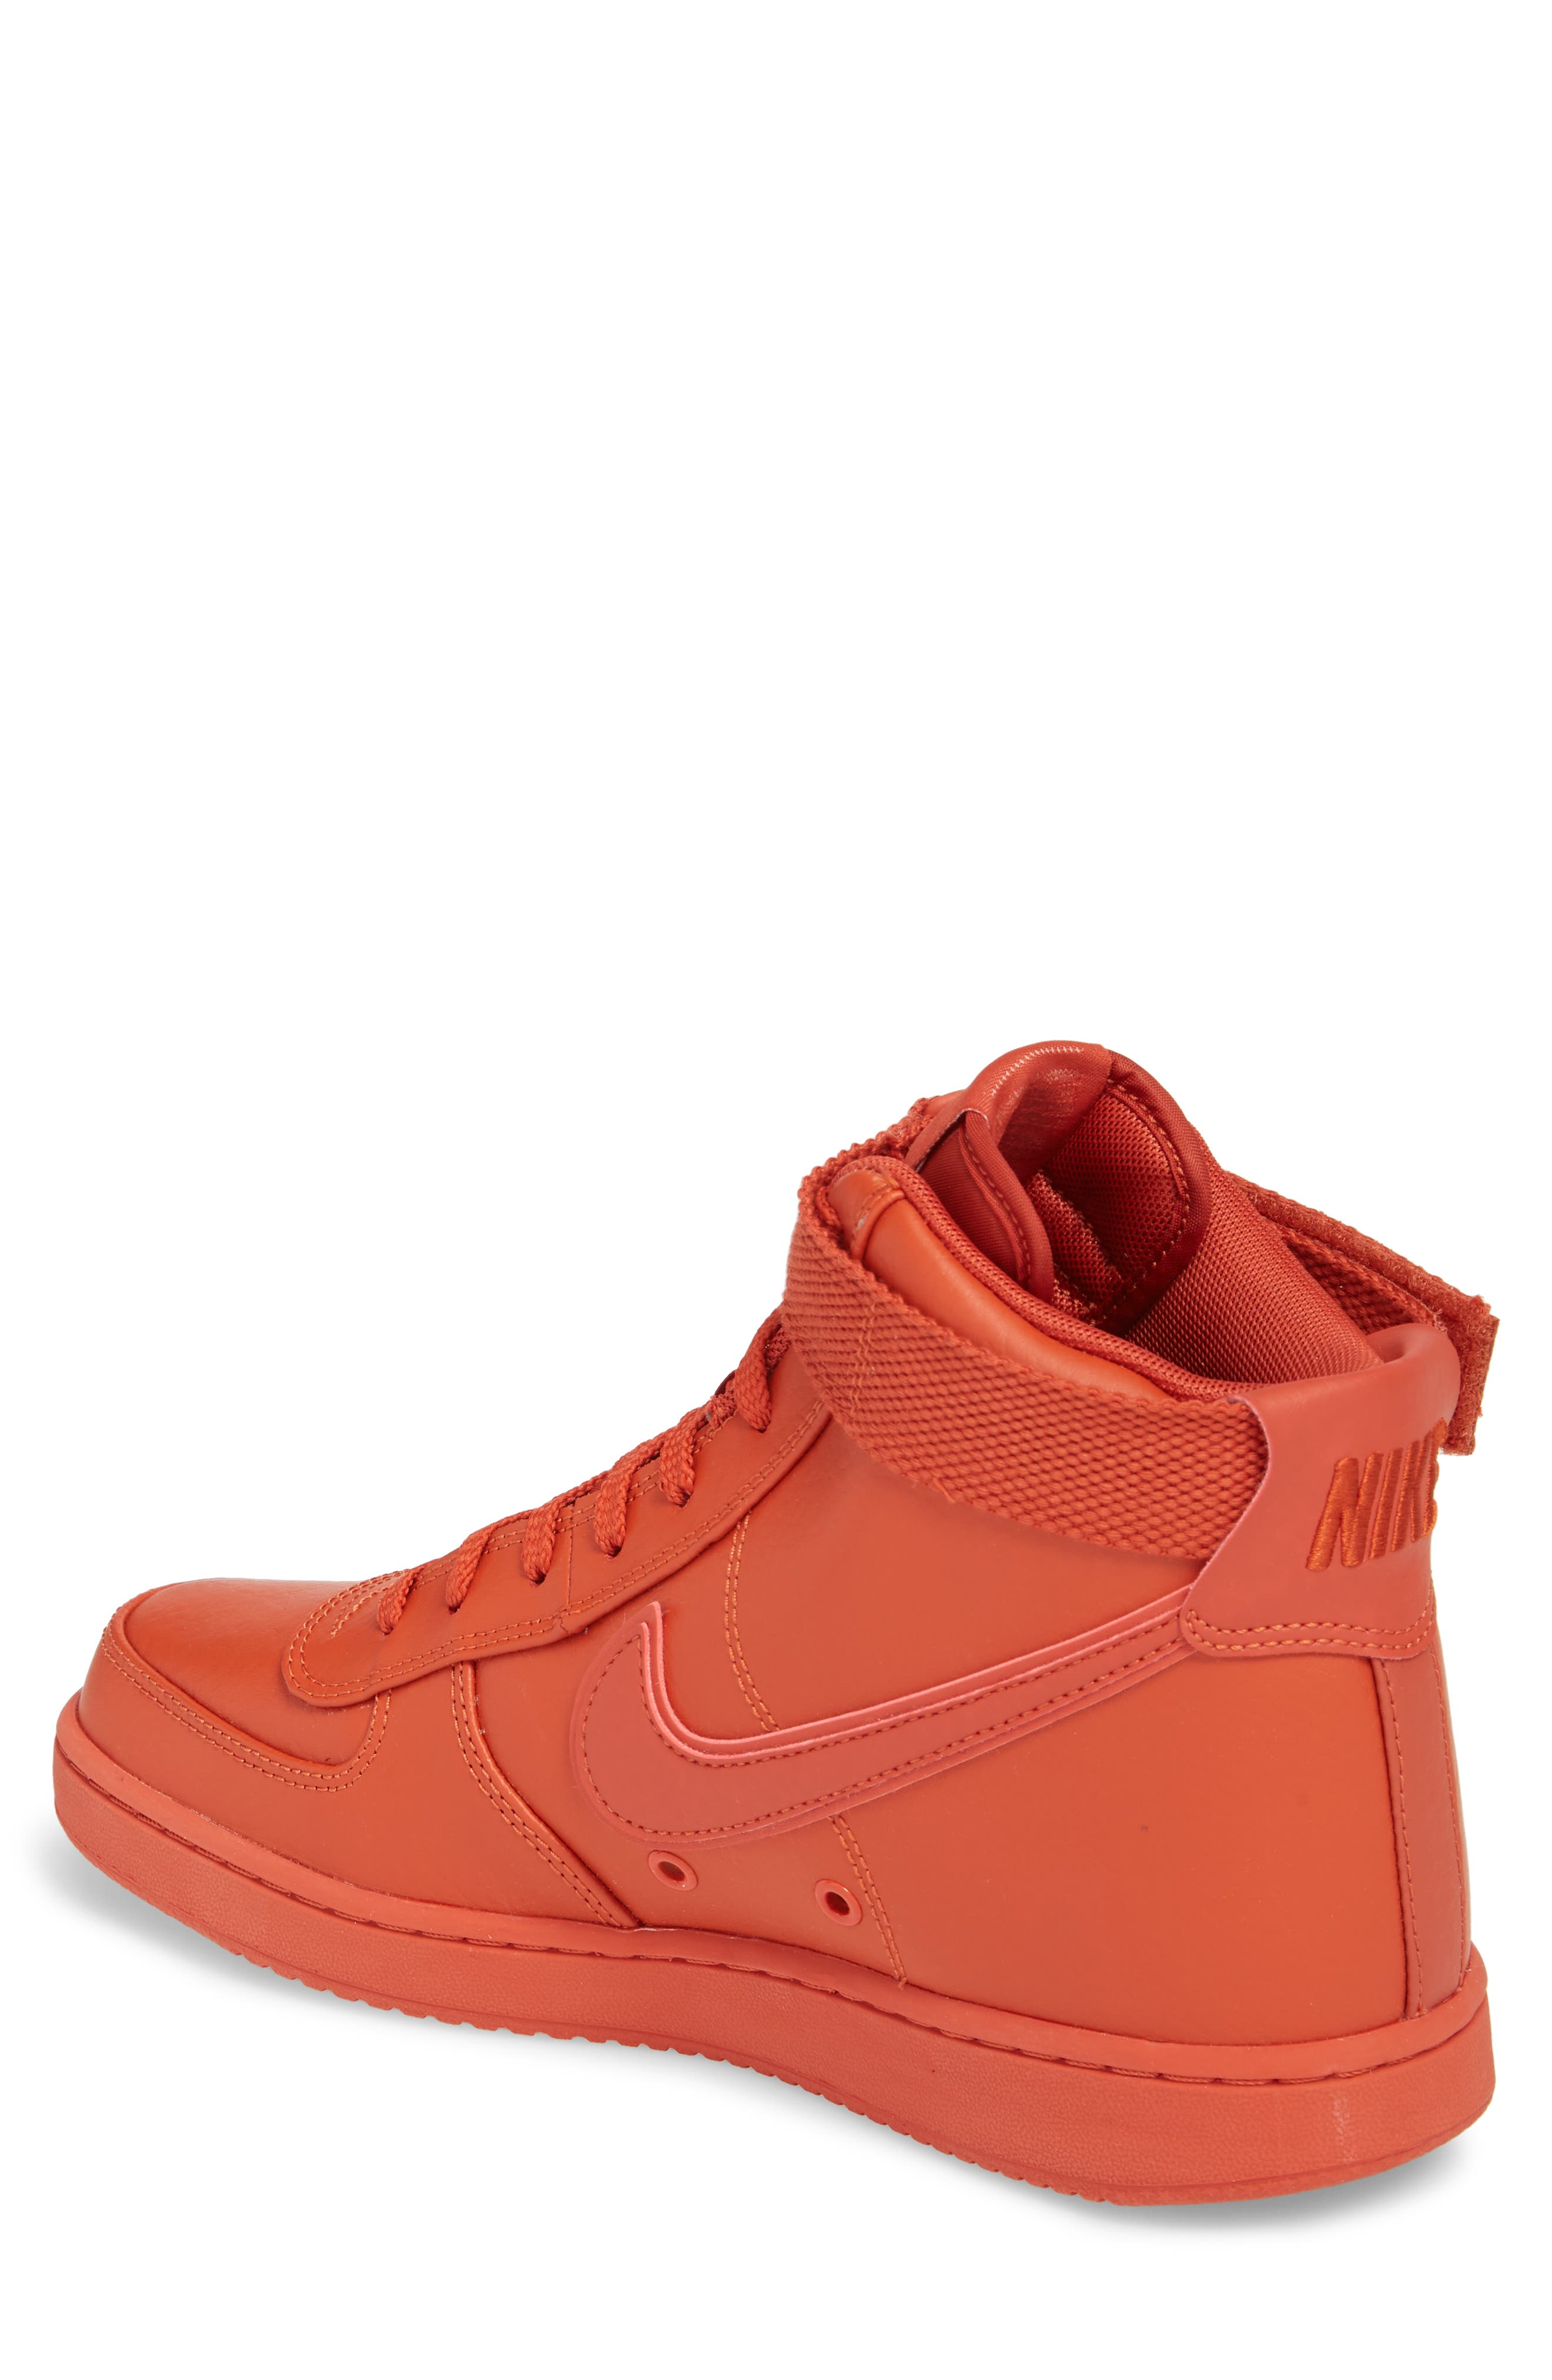 Vandal High Supreme Leather Sneaker,                             Alternate thumbnail 2, color,                             DRAGON RED